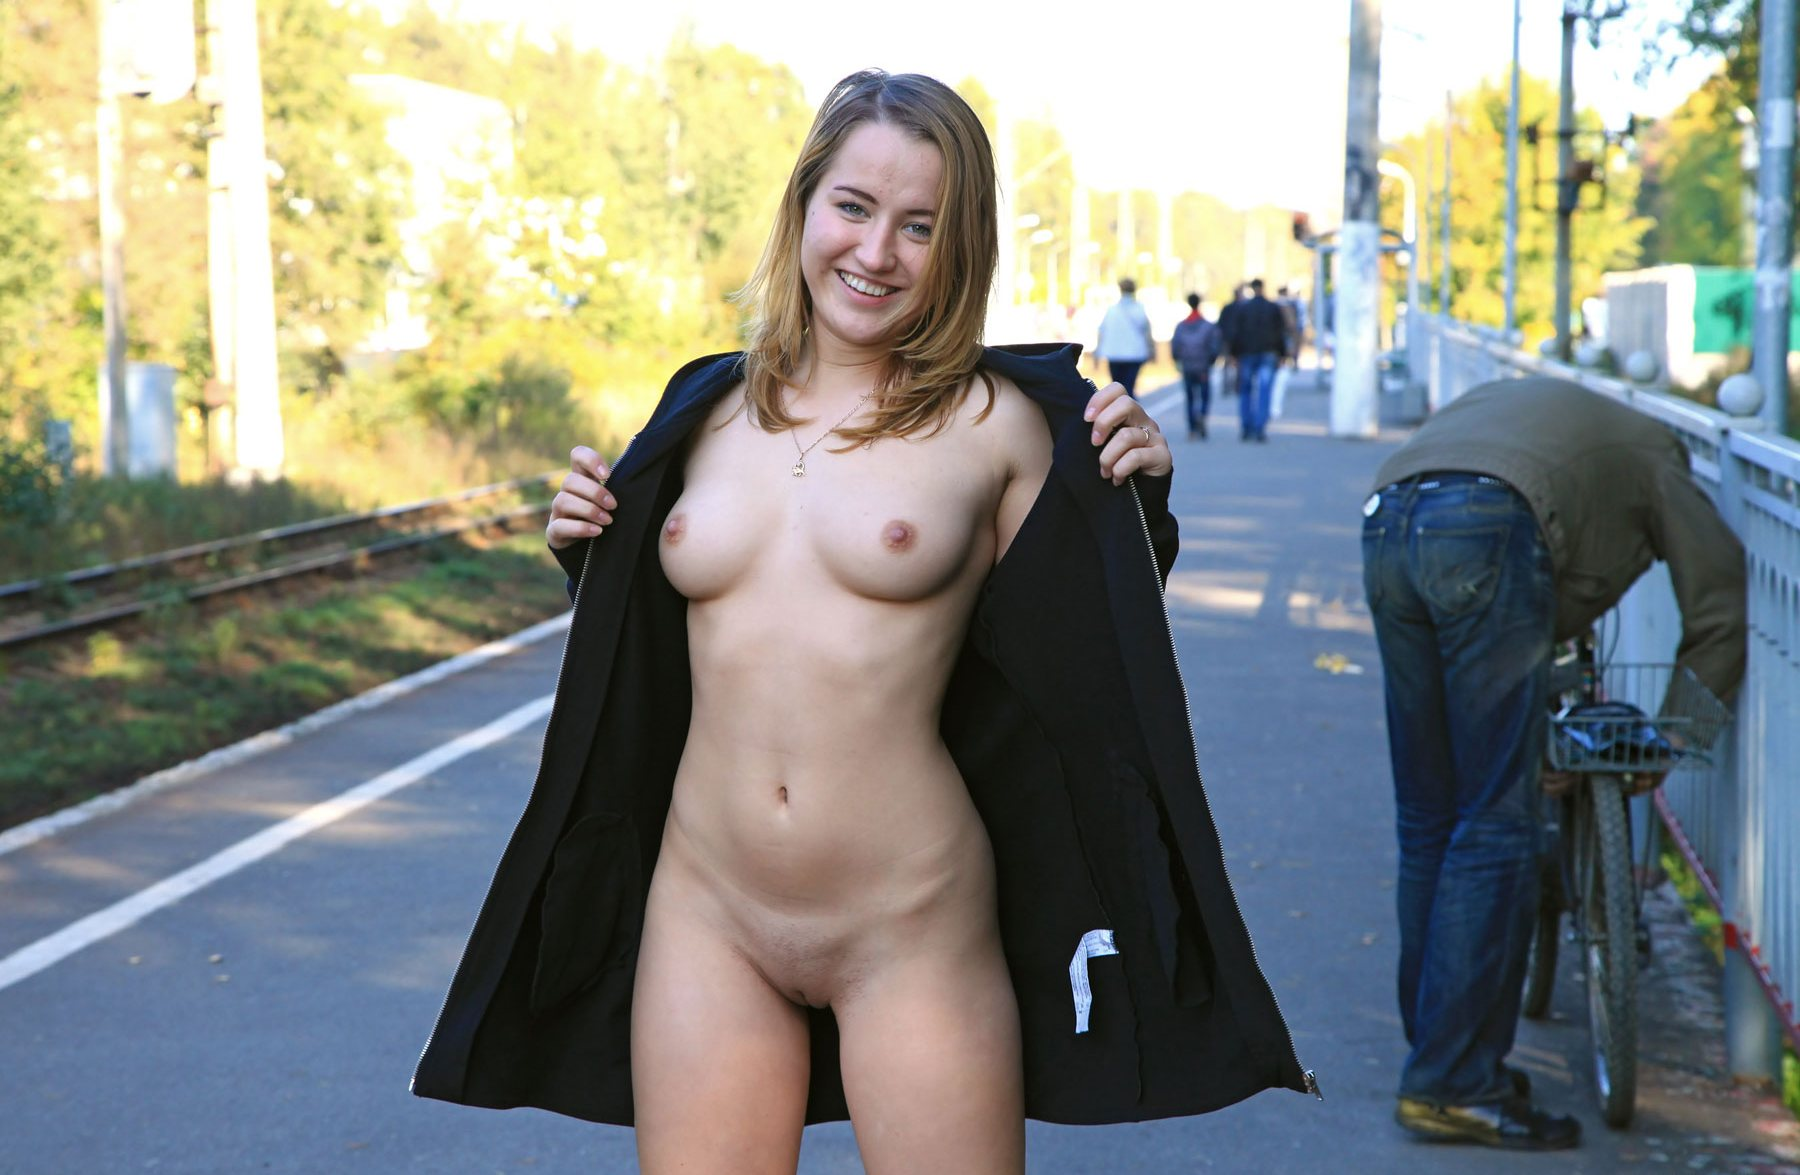 Older women naked in public